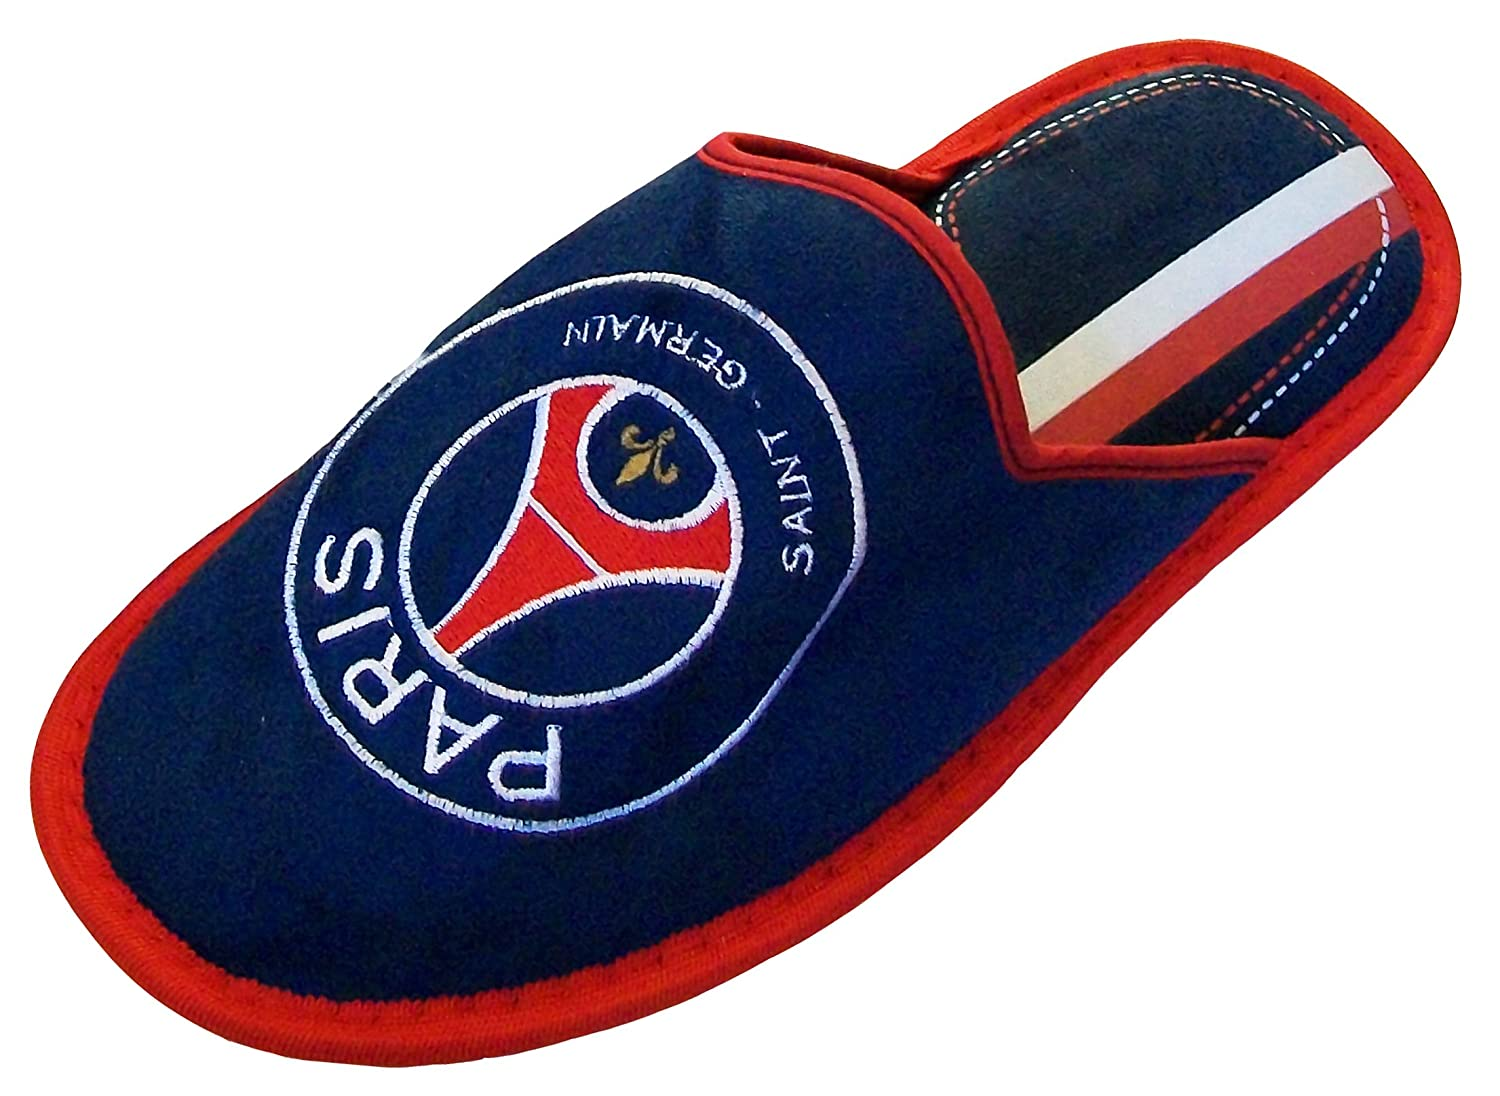 Chaussons bébé garçon PSG - Collection officielle PARIS SAINT GERMAIN tXlKbih